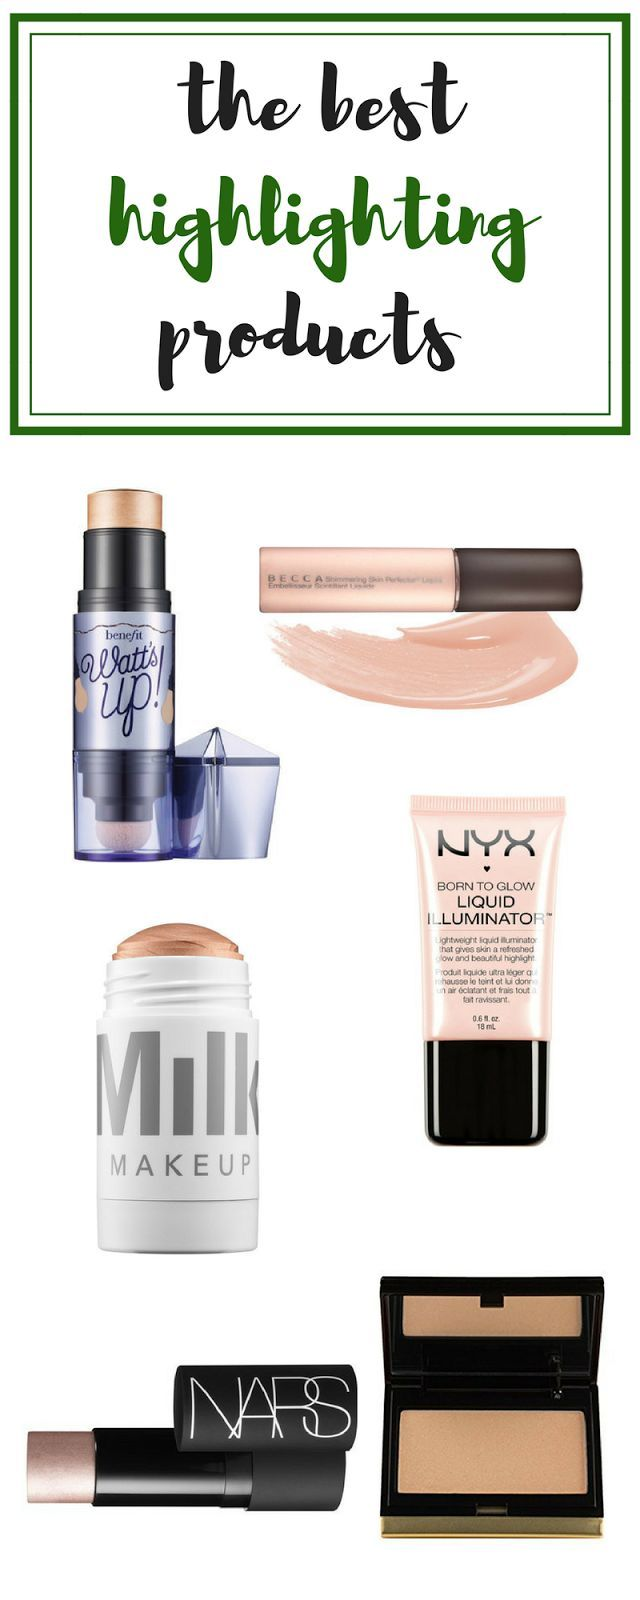 The Best Highlighting Products | Roundup Of The Best Highlighters | Makeup Reivews | BECCA, Watt's Up, Milk Cosmetics. NARS, Kevyn Aucoin